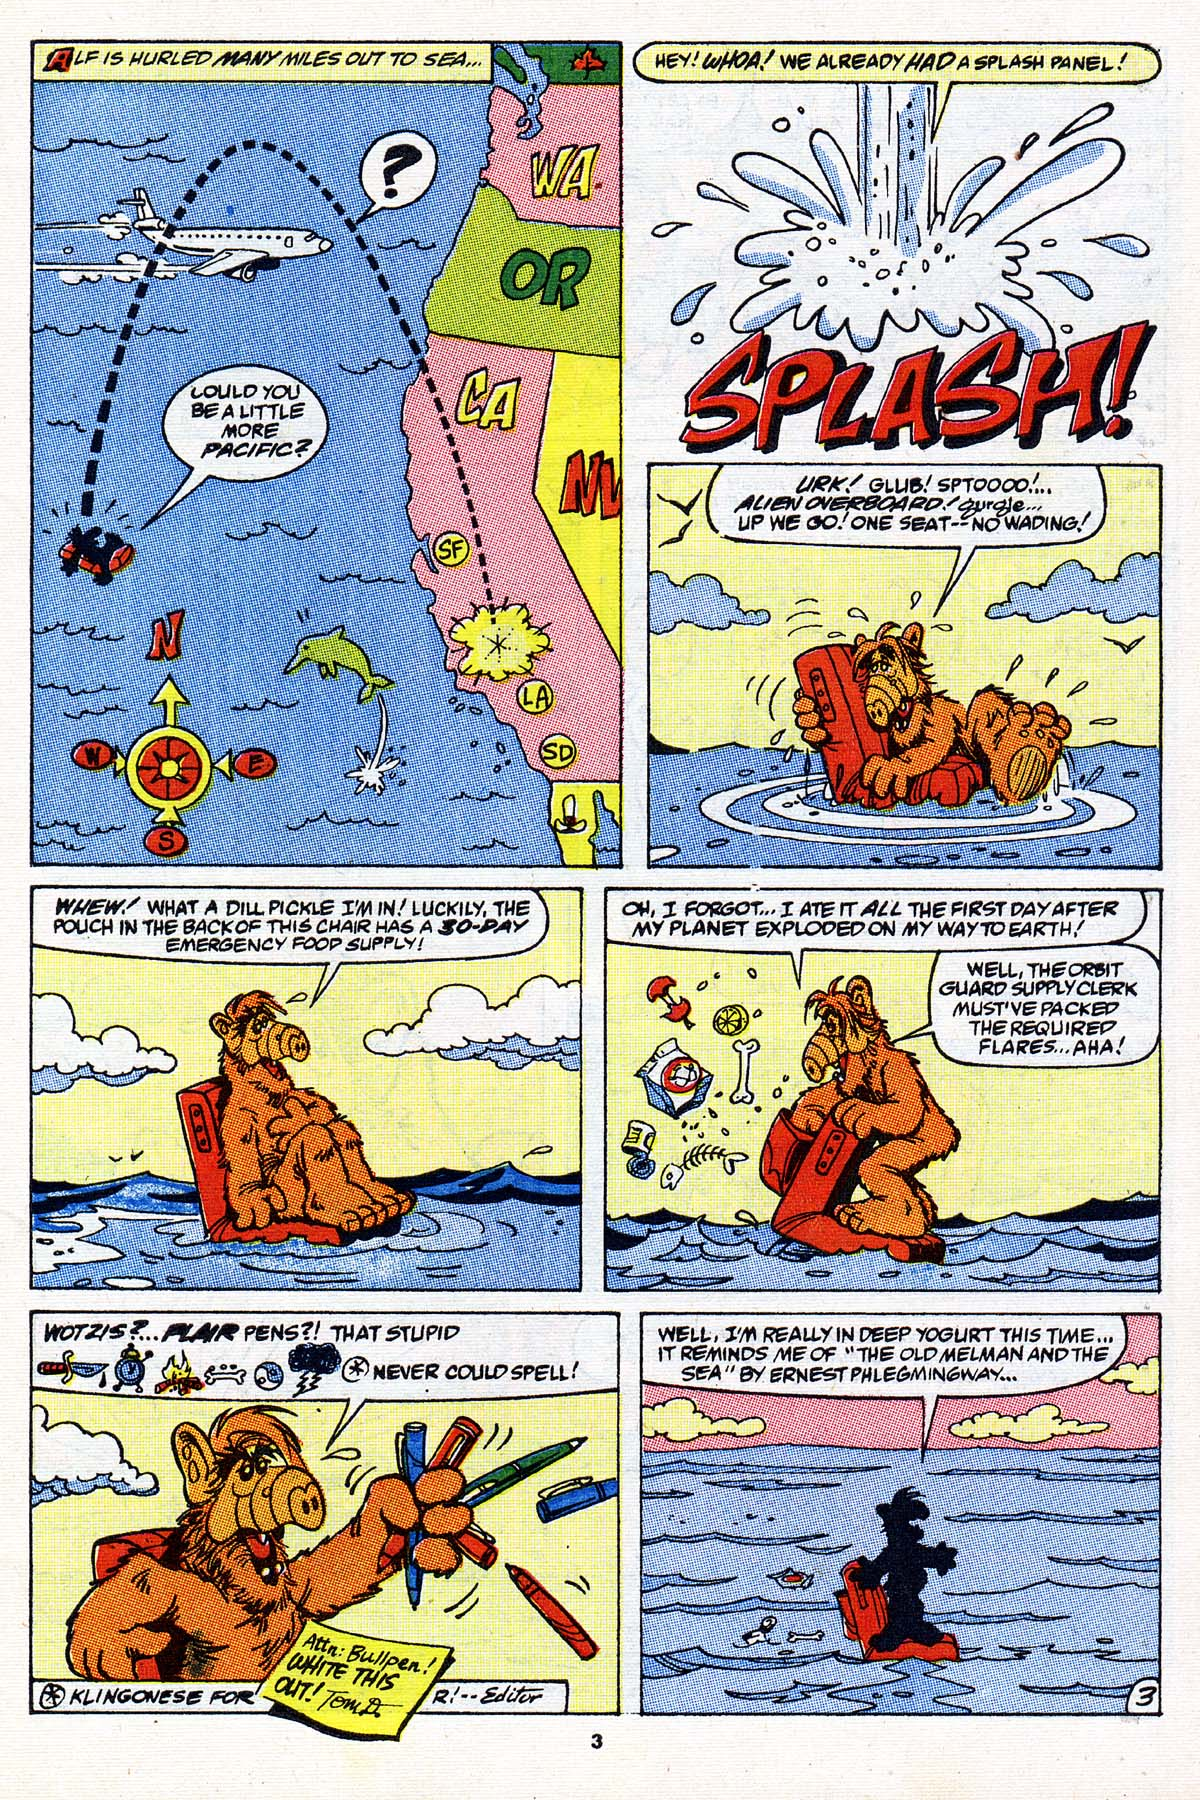 Read online ALF comic -  Issue #27 - 4